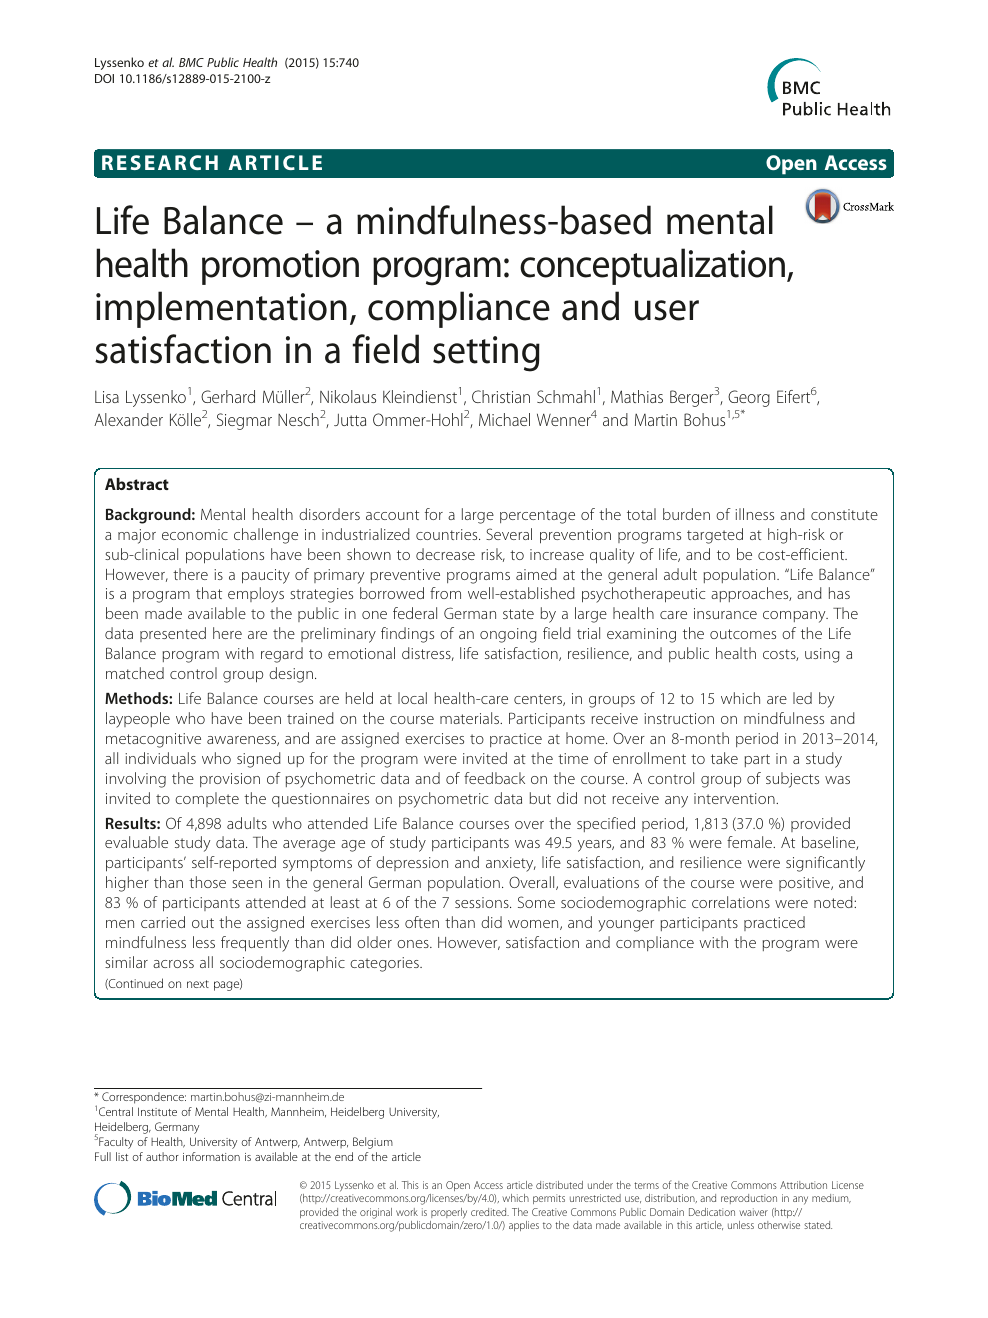 research paper on mindfulness